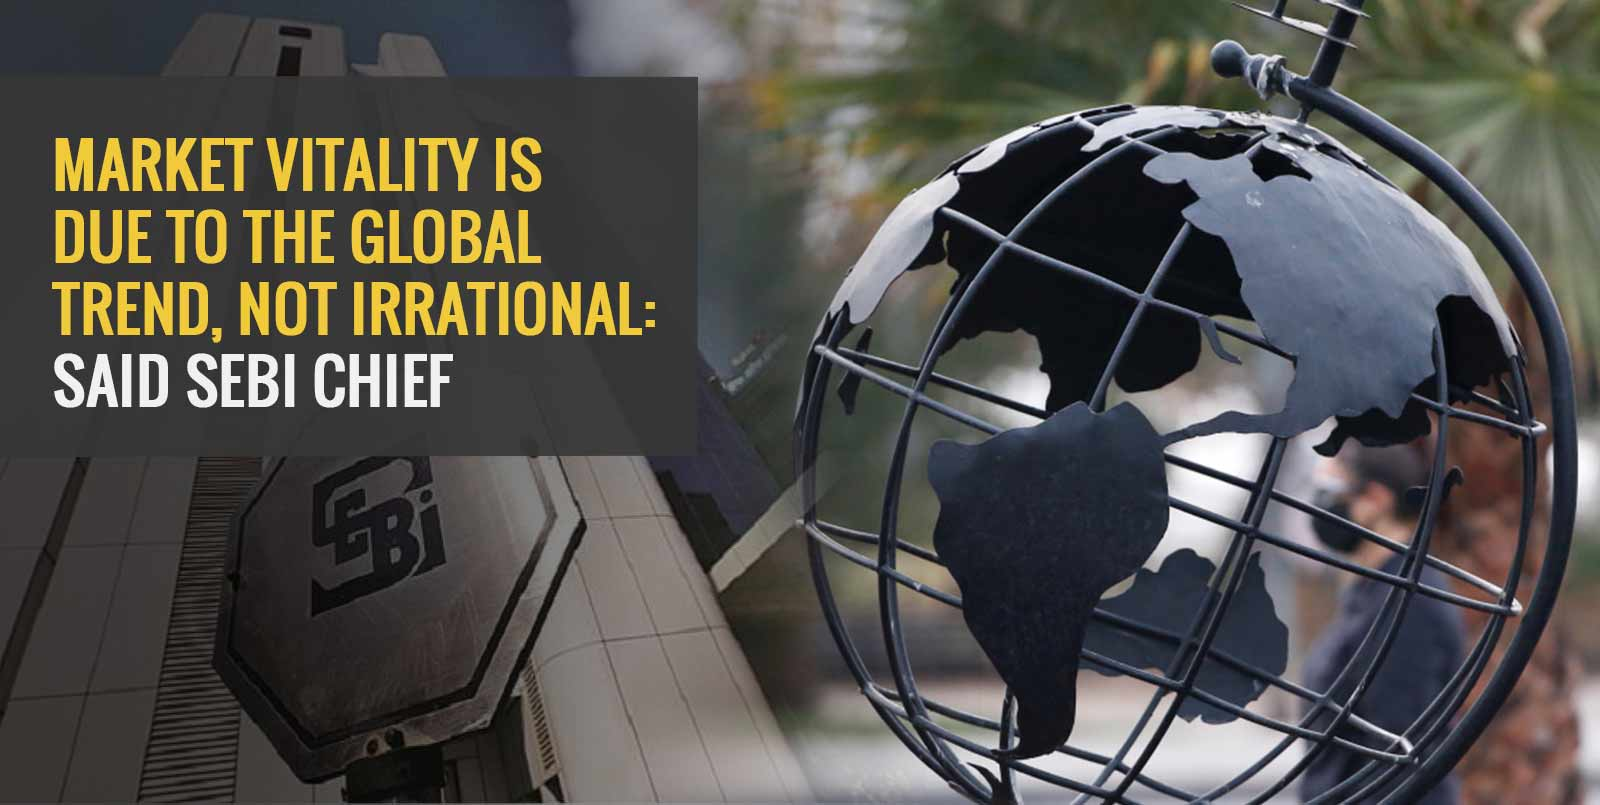 Market Vitality Is Due To The Global Trend, Not Irrational: Said SEBI Chief